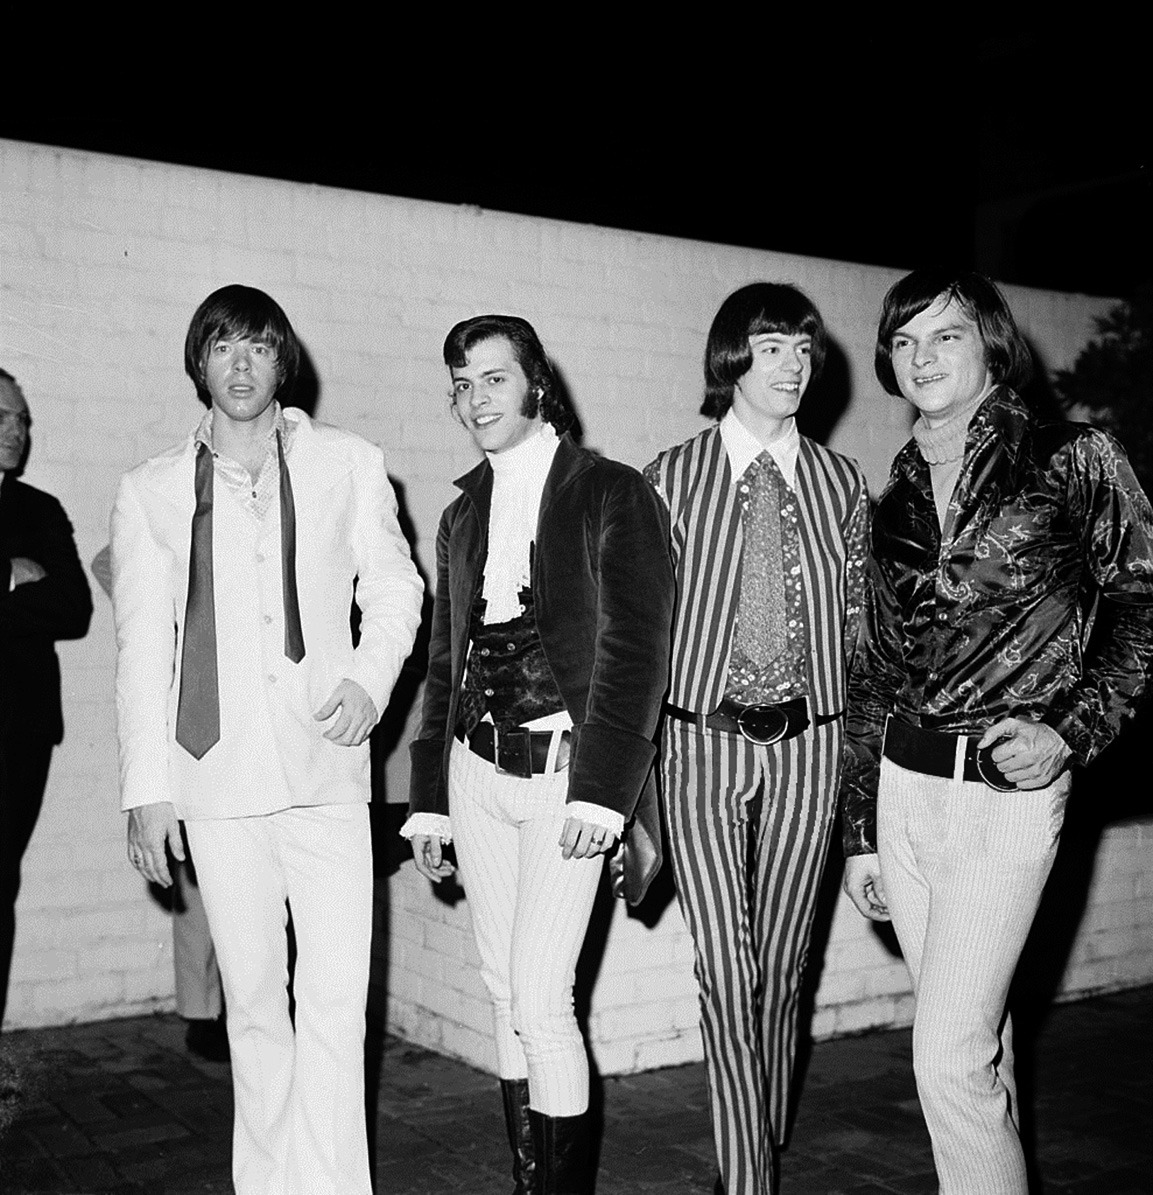 The Seeds (L-R) Sky Saxon, Daryl Hooper,Rick Andridge and Jan Savage) pose for a photo in 1967 in Los Angeles